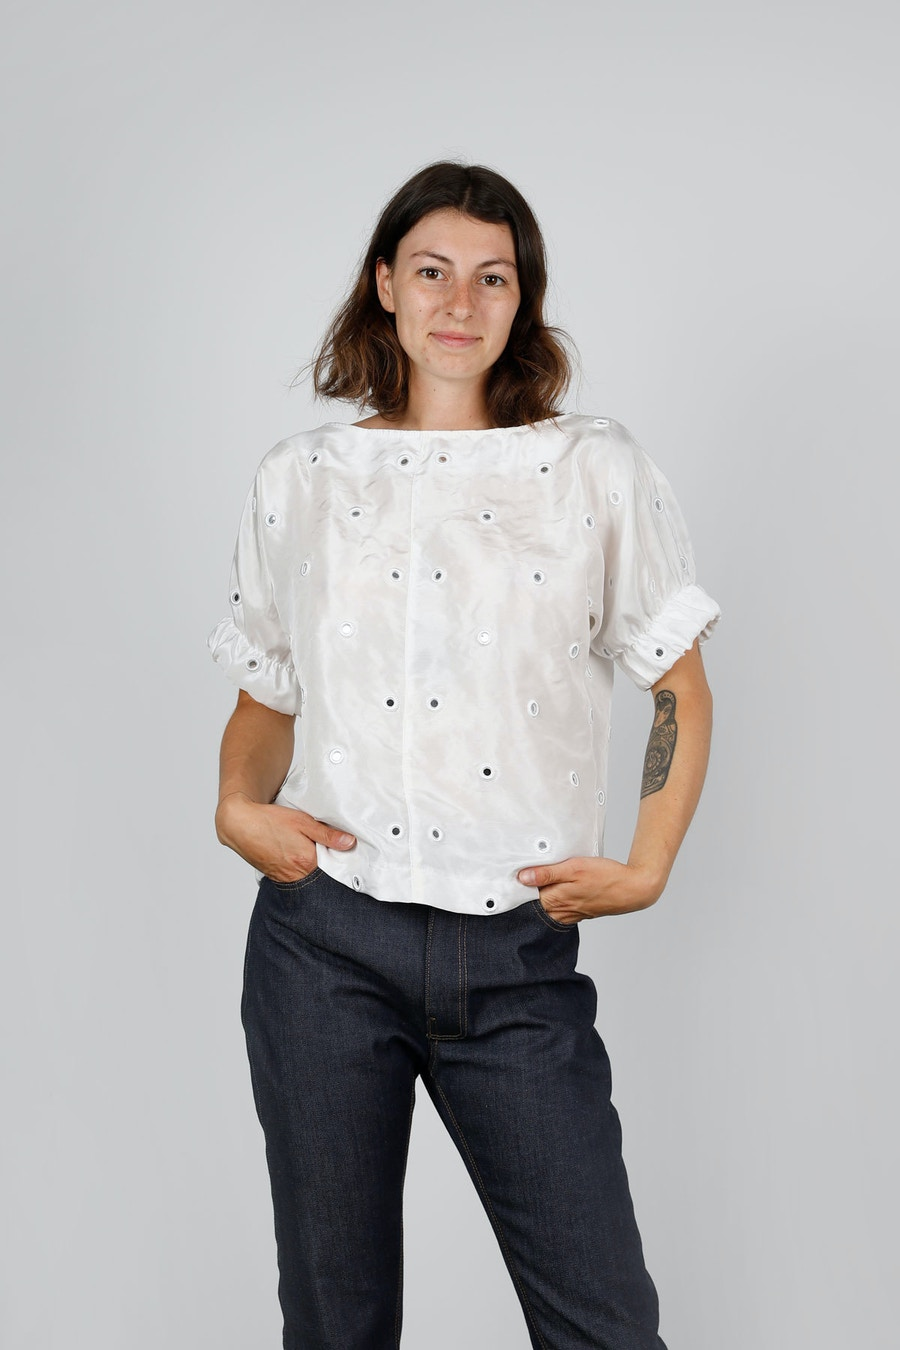 SQ TAL Cuff Top front Mirrored Silk Special by The Fabric Store